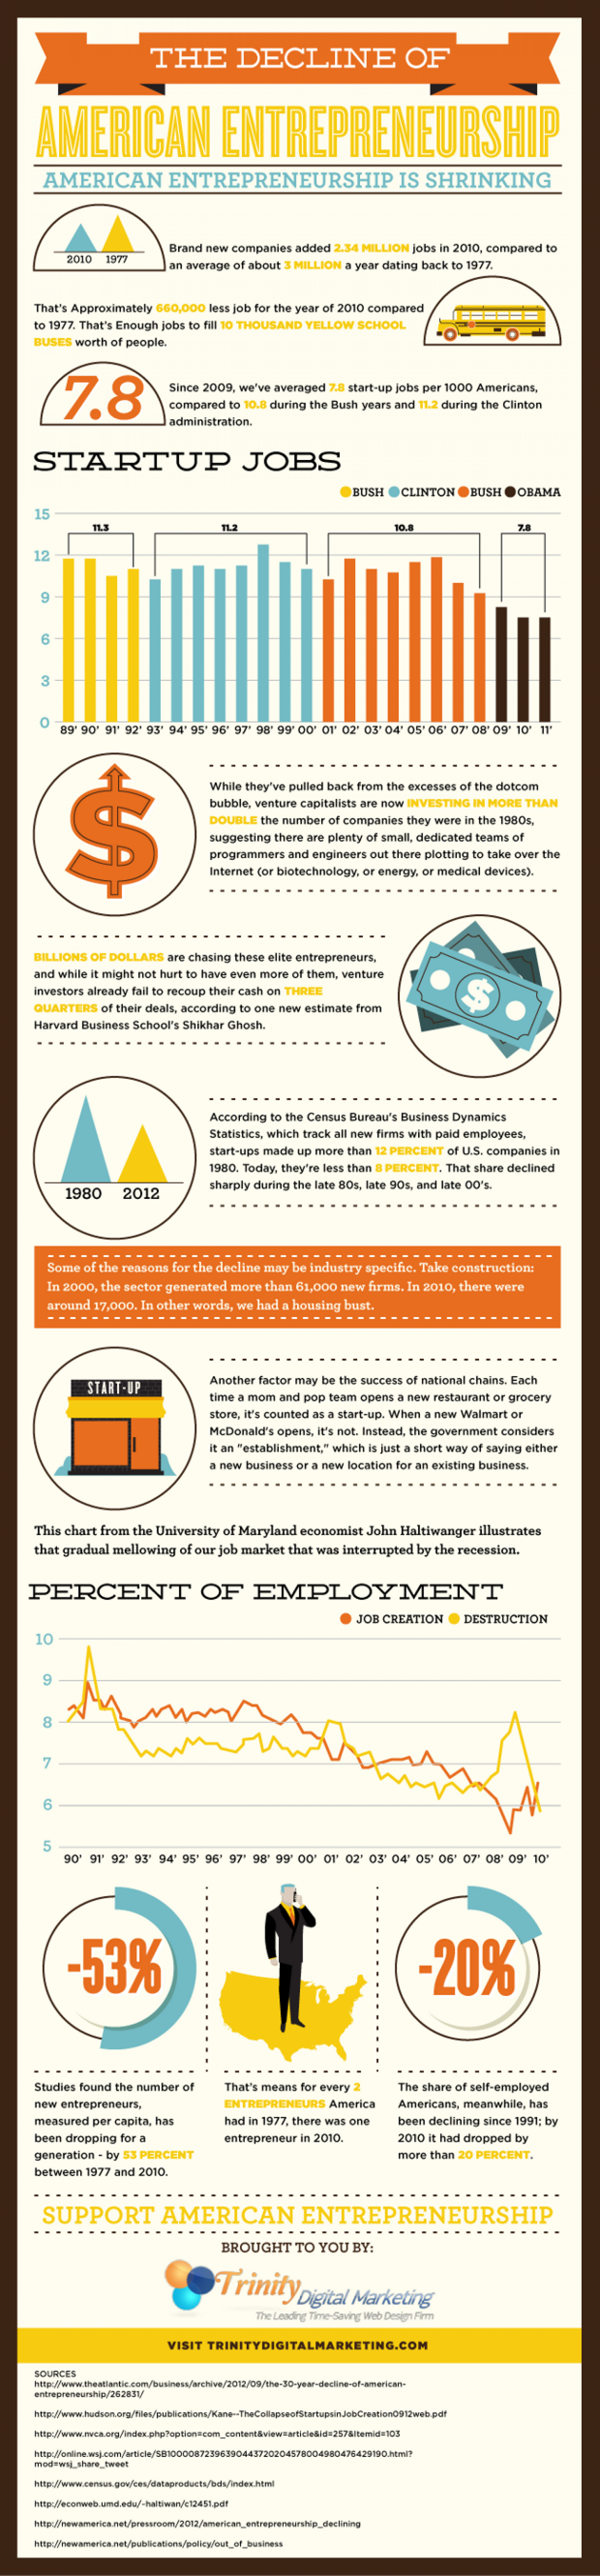 The Decline of American Entrepreneurship Infographic